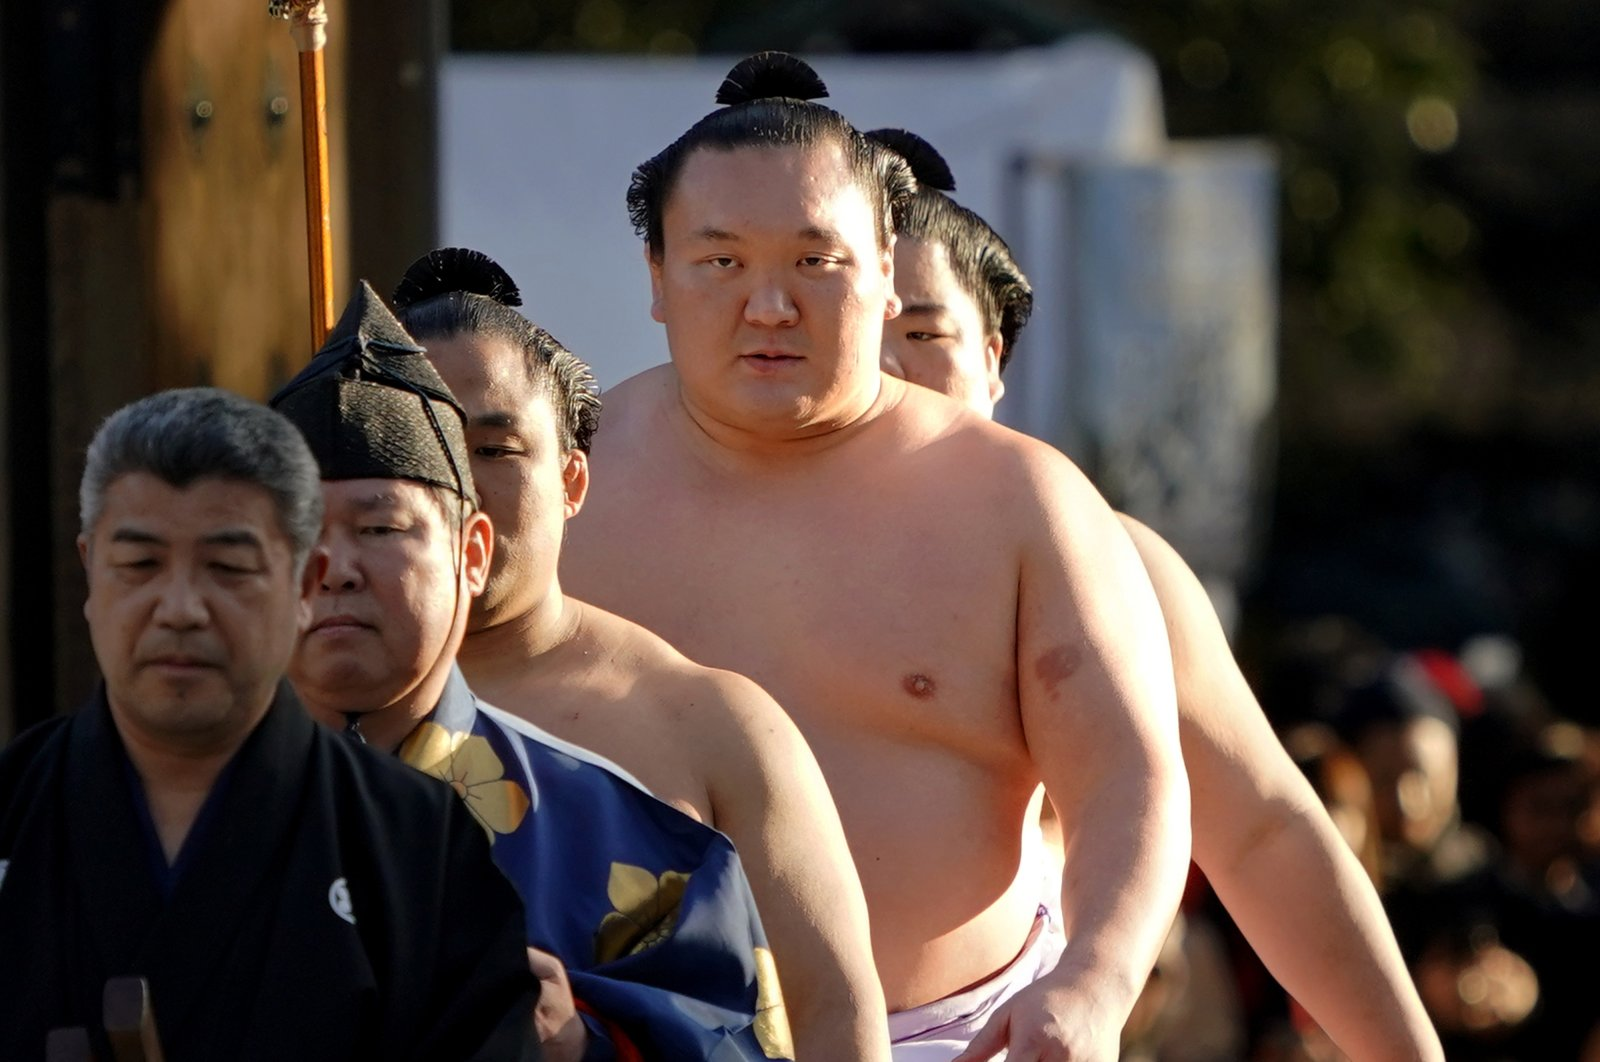 Hakuho, second from right, arrives to perform his ring entry, in Tokyo, Japan, Jan. 9, 2018. (AP Photo)